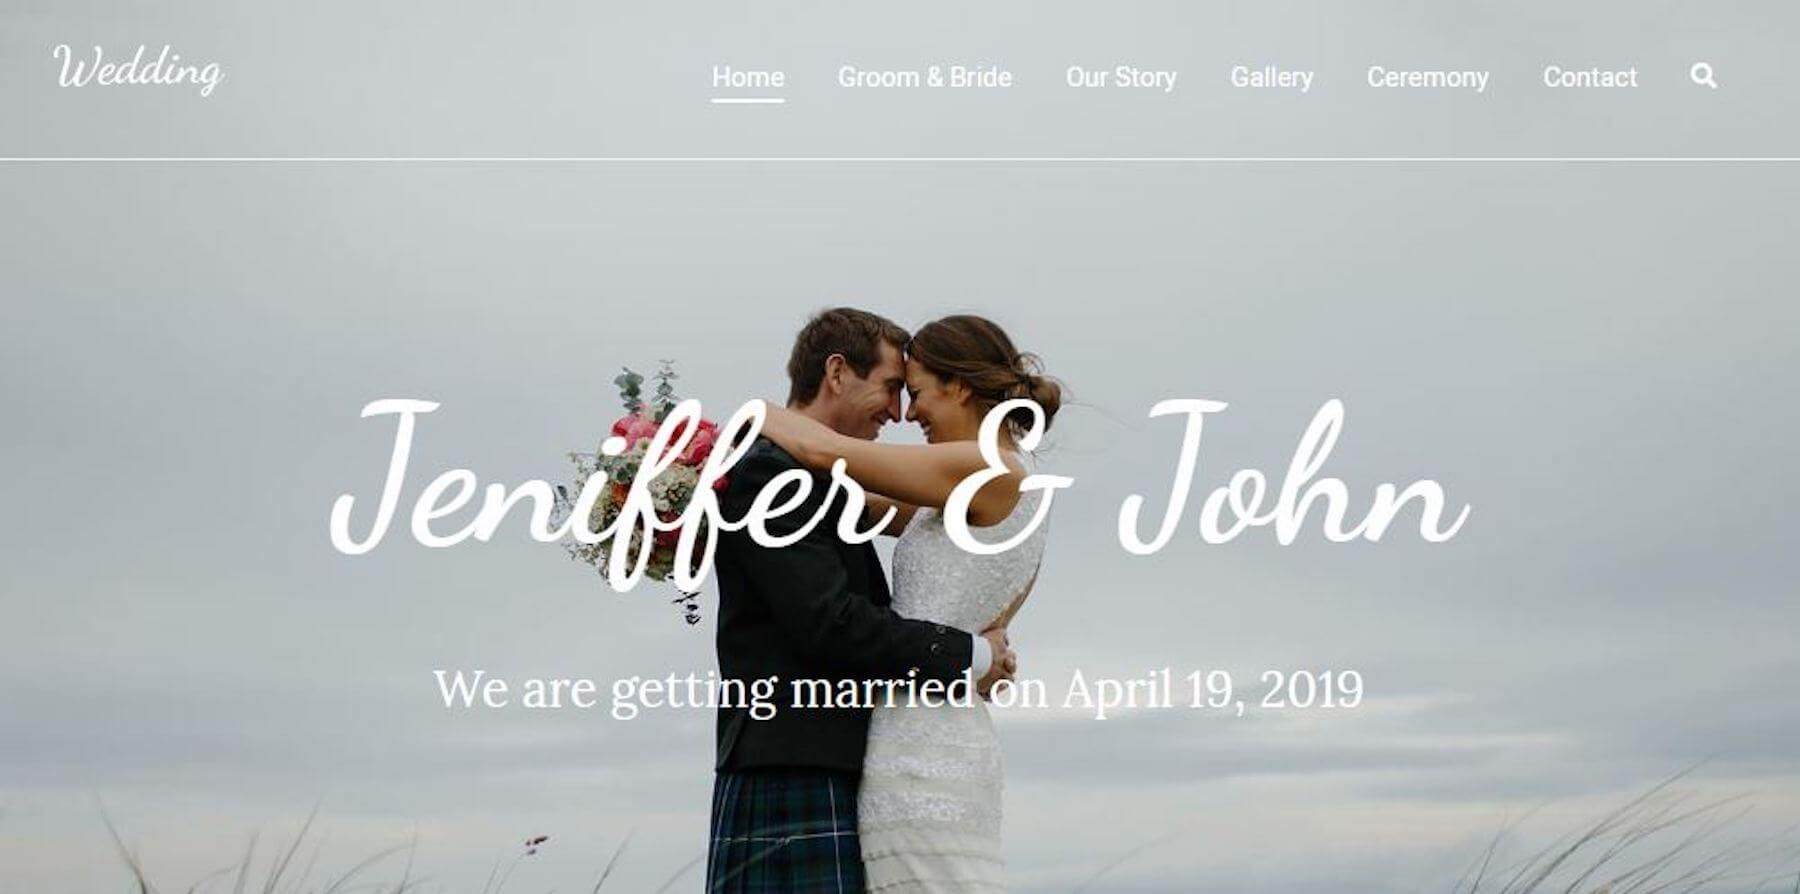 6 Must-Haves on Your Wedding Website